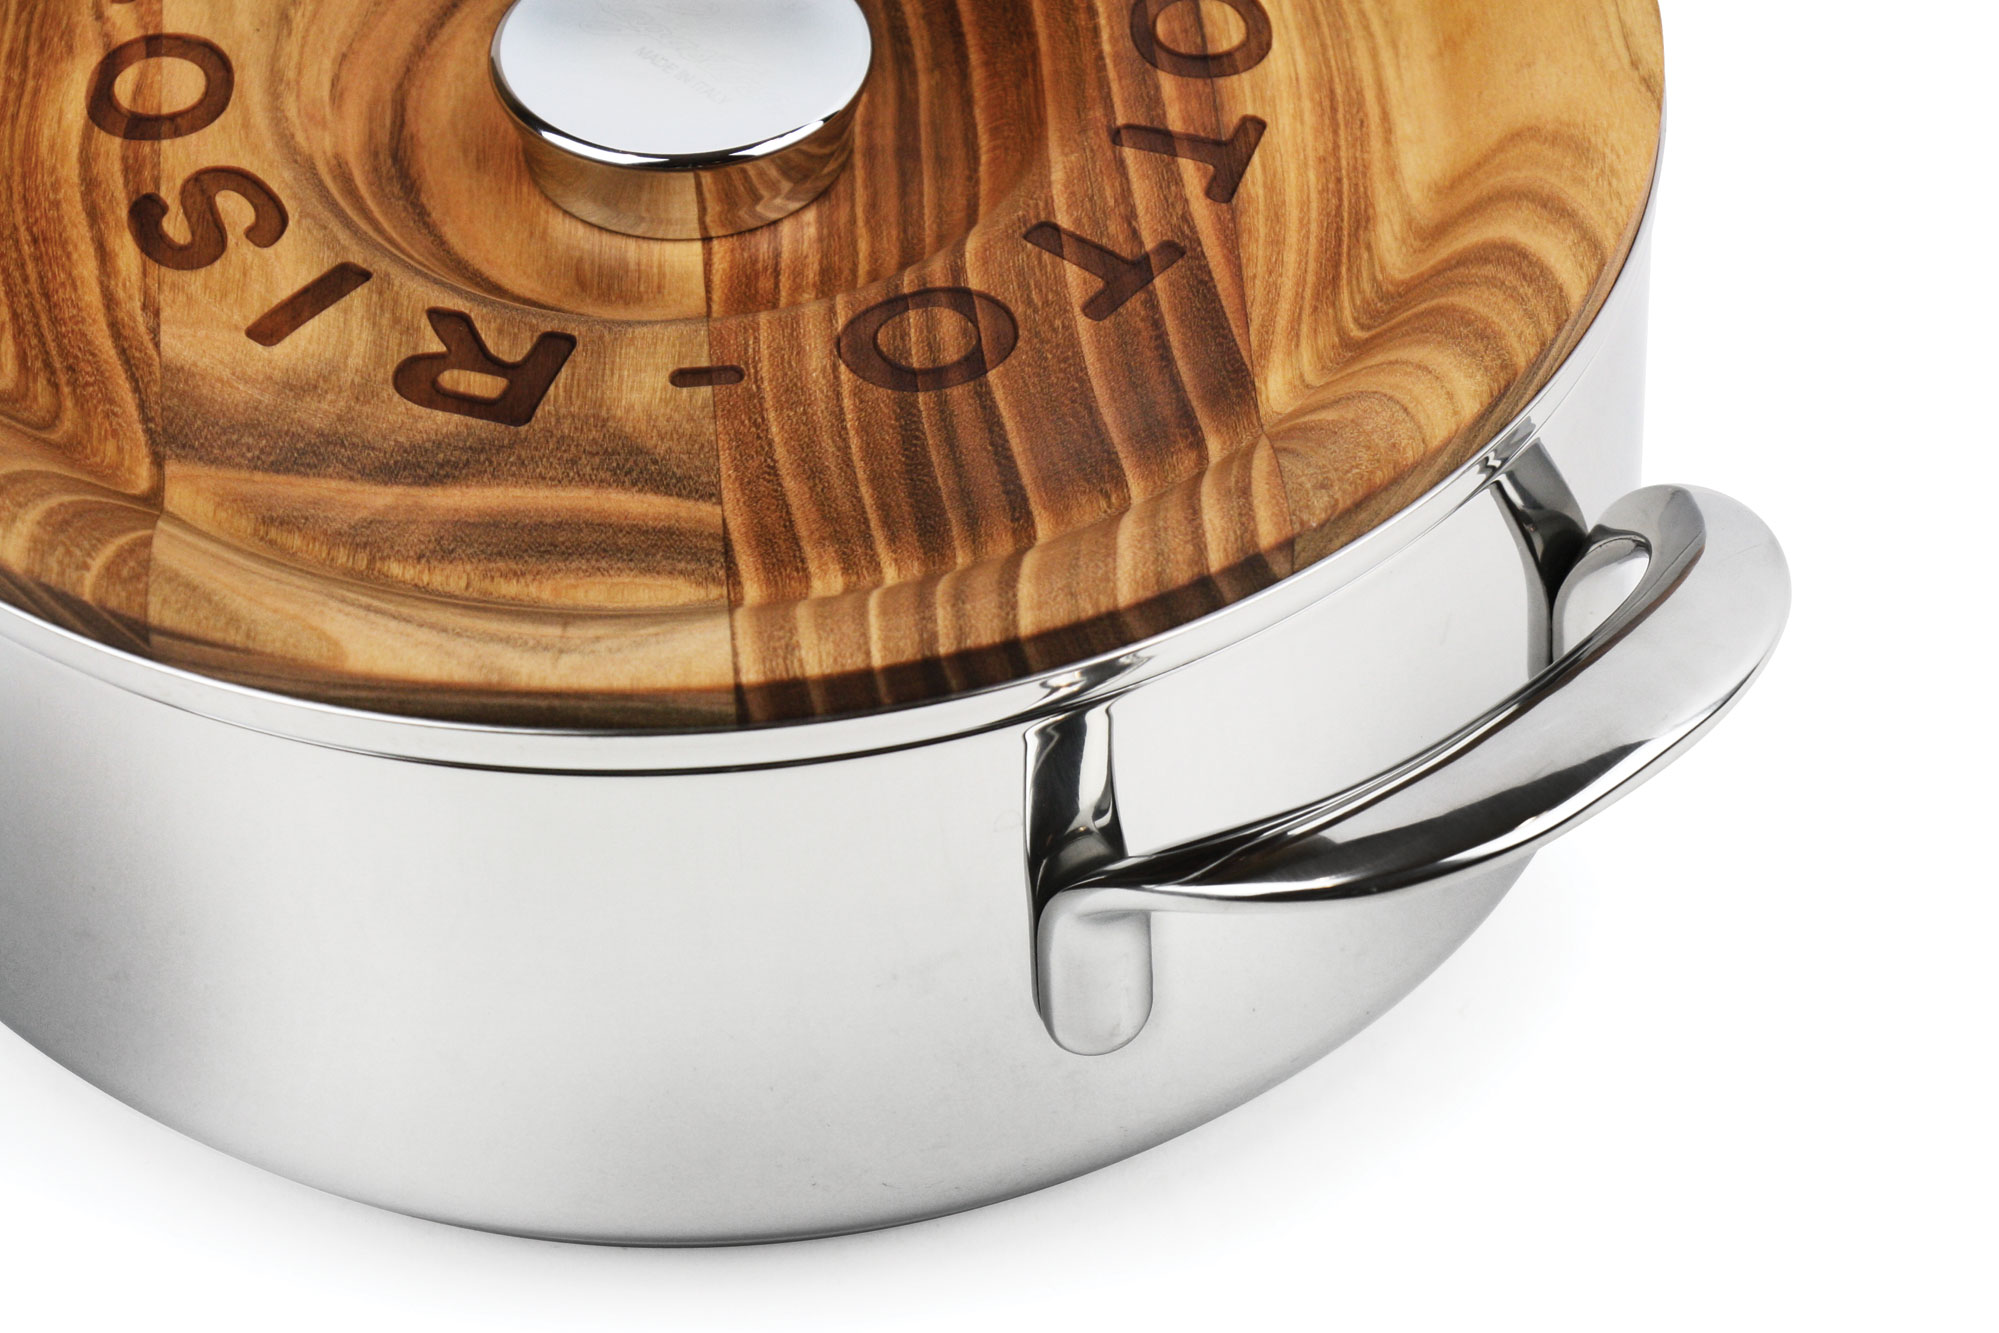 Lagostina Risotto Pan 4 Quart Cutlery And More